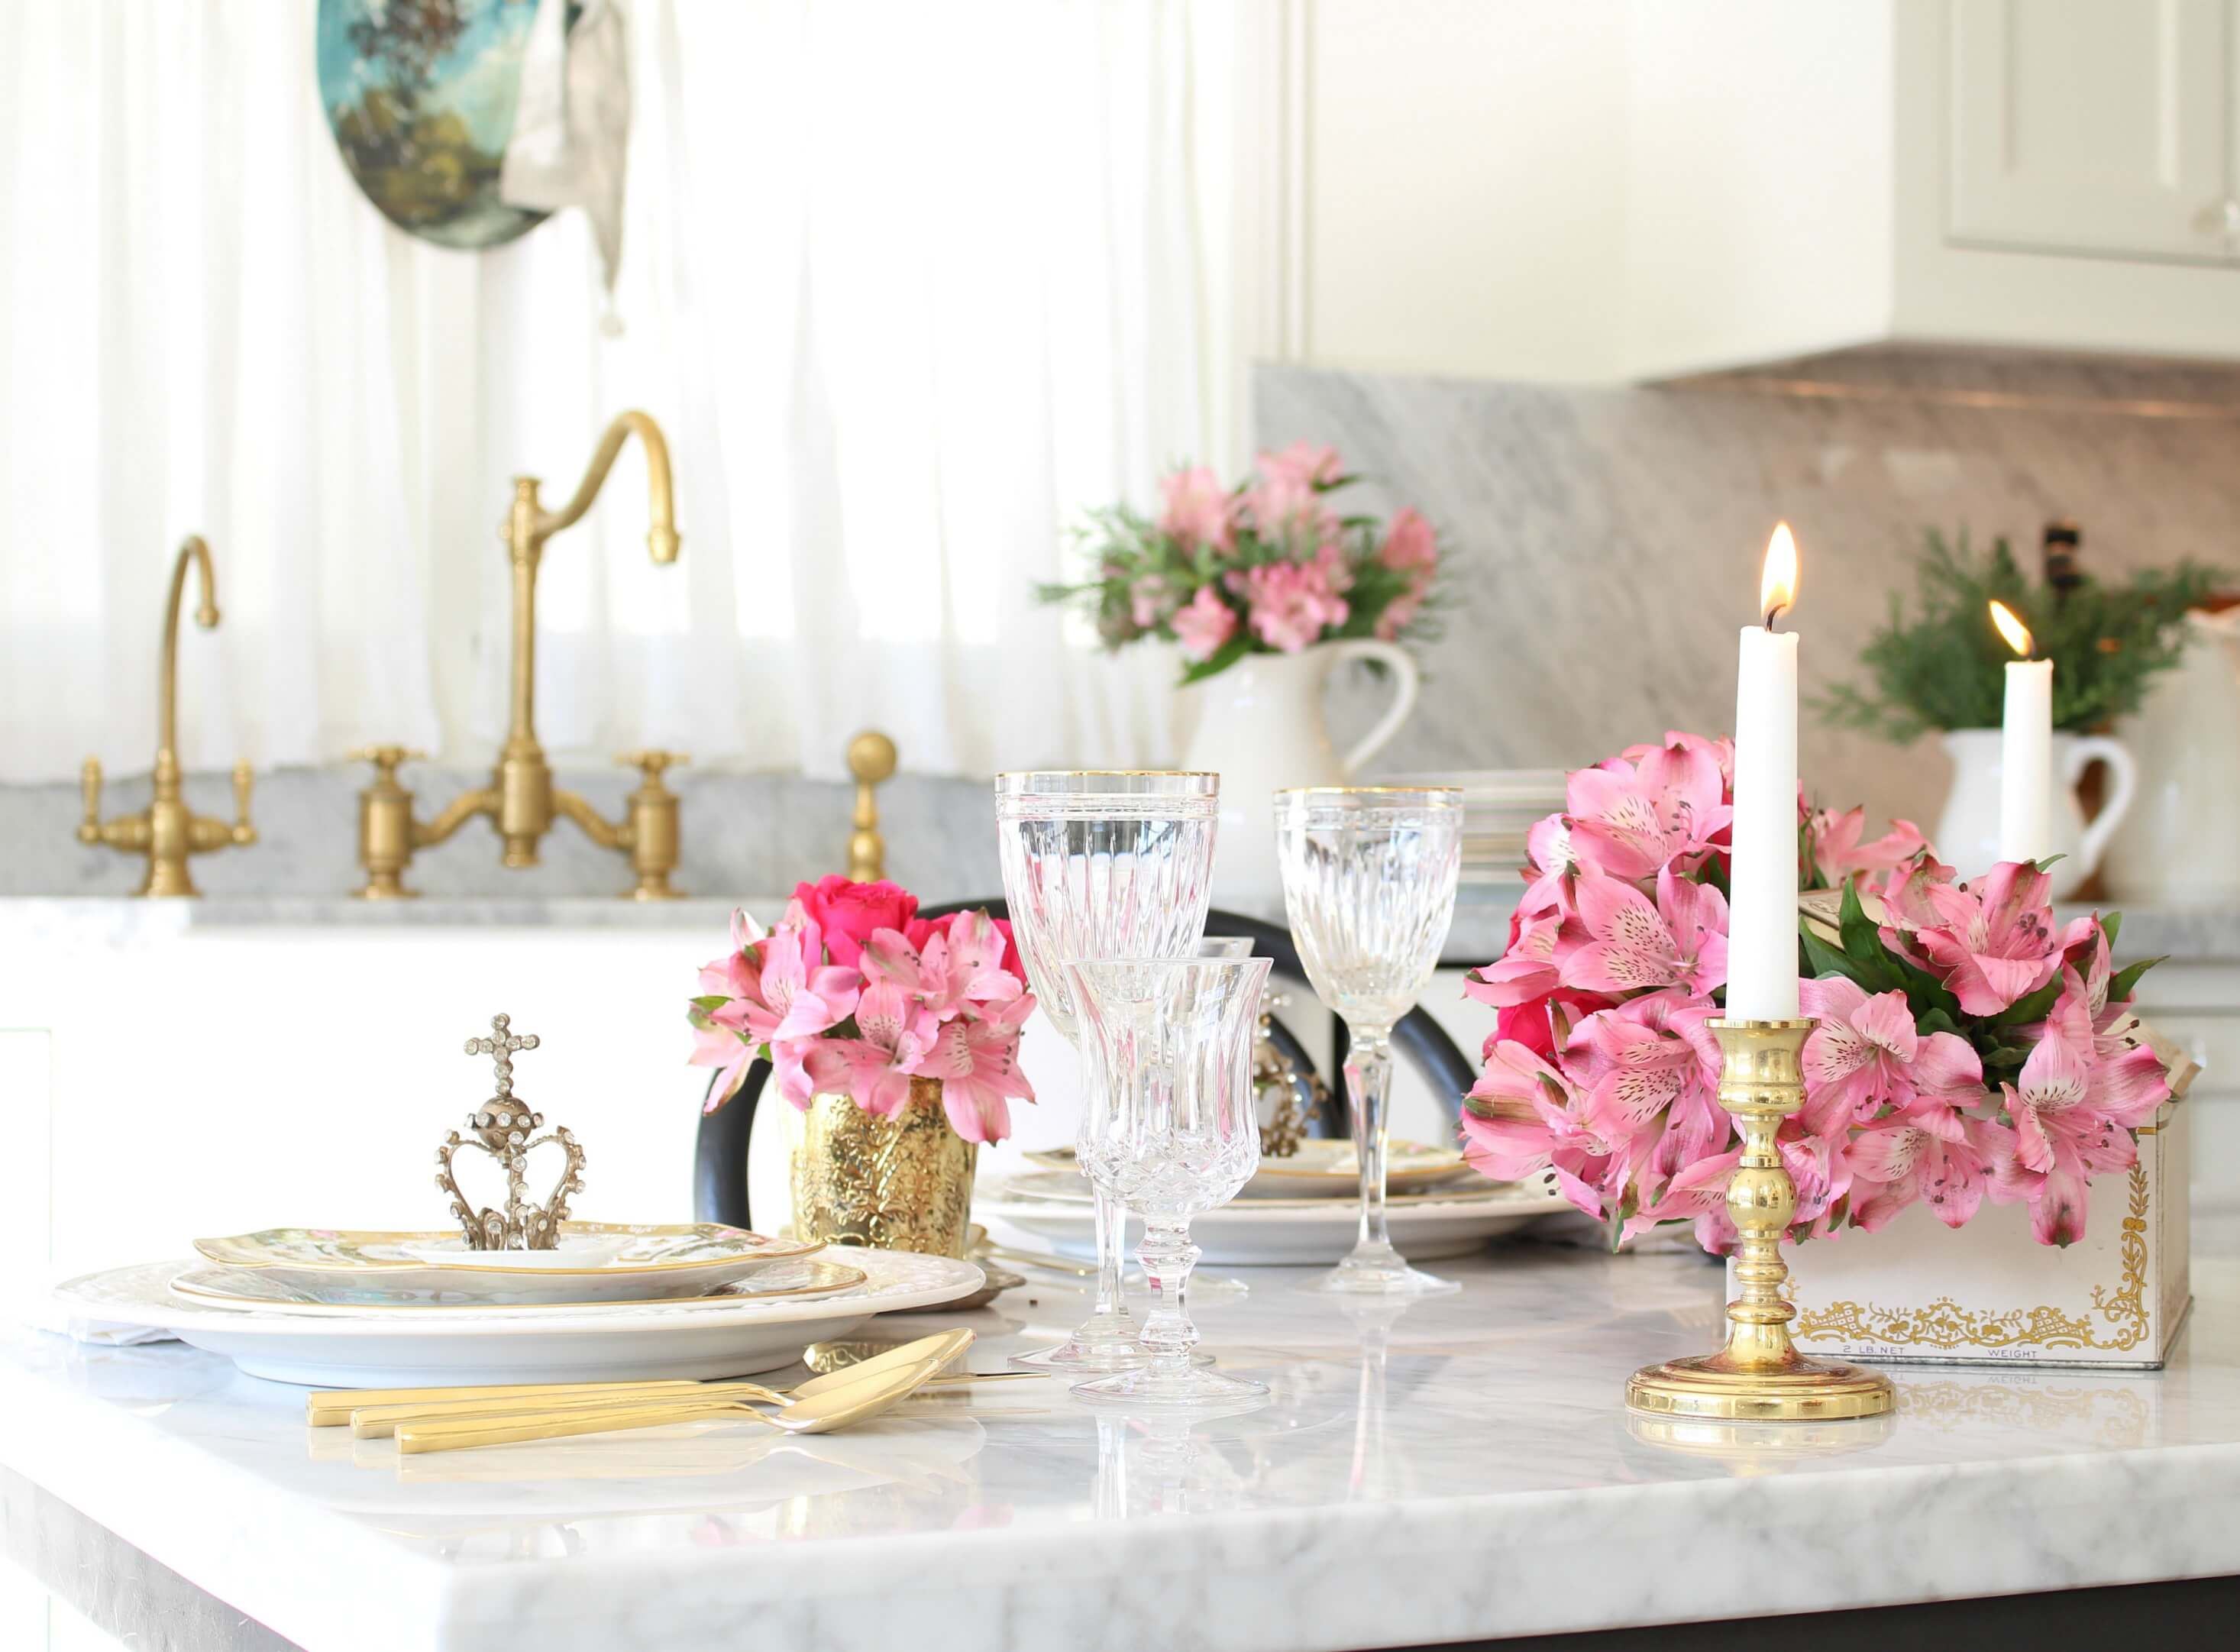 5 Ways to Enjoy Your Home this Valentine\'s Day - Novero Homes